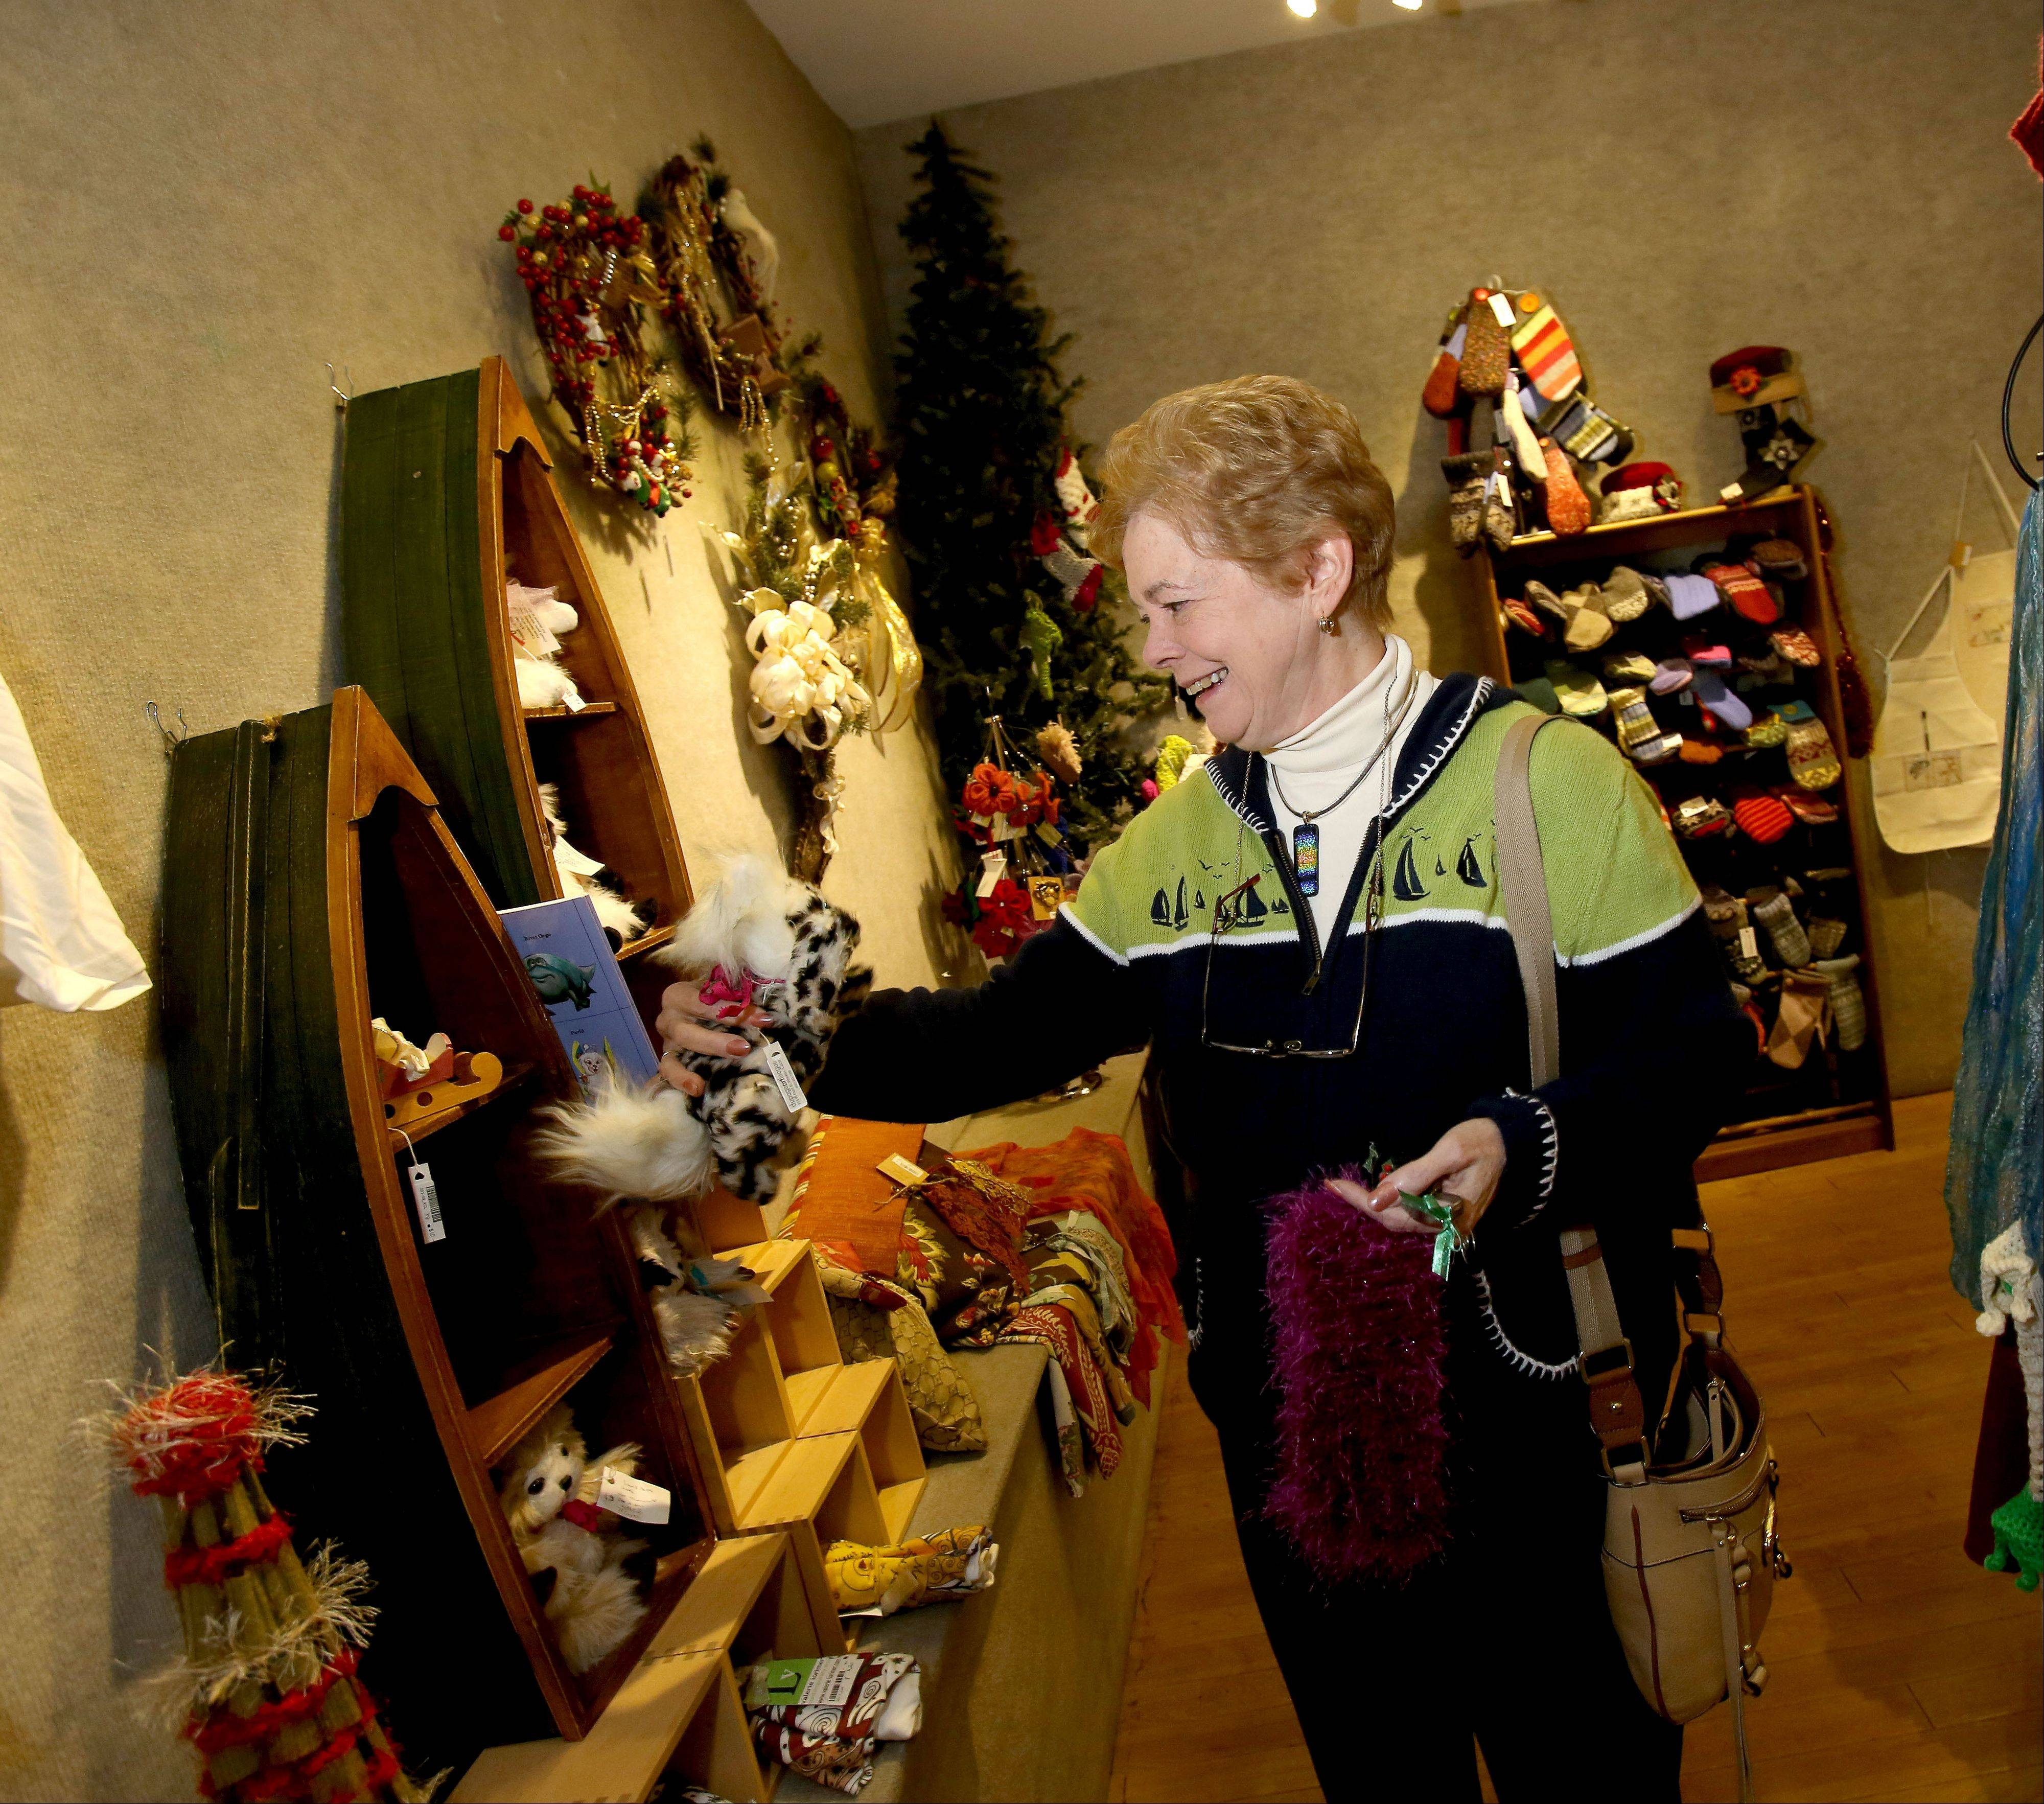 Penny Linneweh of Glen Ellyn does a little shopping Friday at the �Yuletide Treasures� sale at the DuPage Art League in Wheaton. Linneweh is also an art league member and contributor.